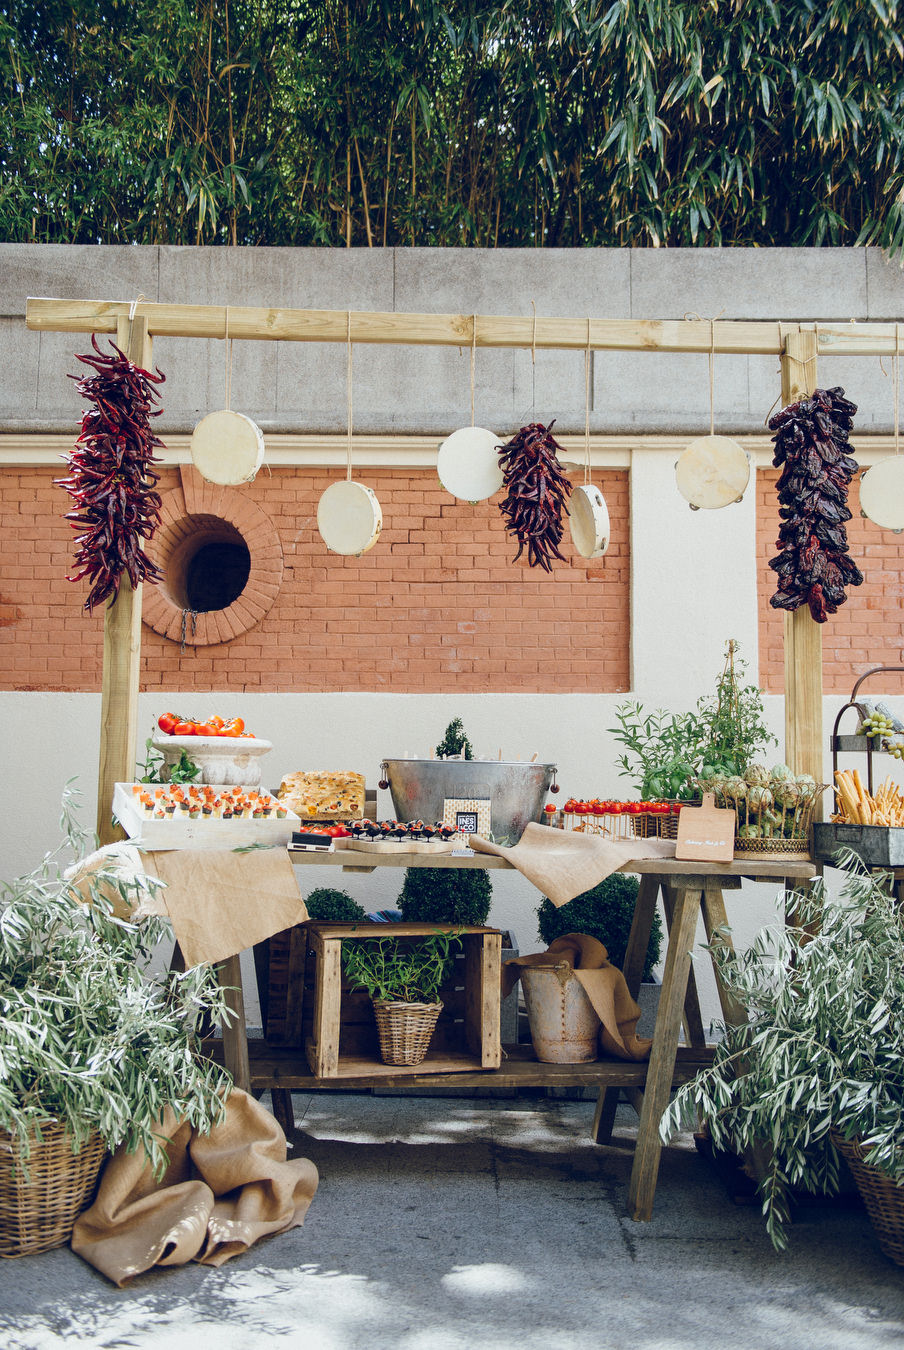 calista-one-lista-de-bodas-online-blog-de-bodas-calista-one-summer-party-2016-pomodoro-10